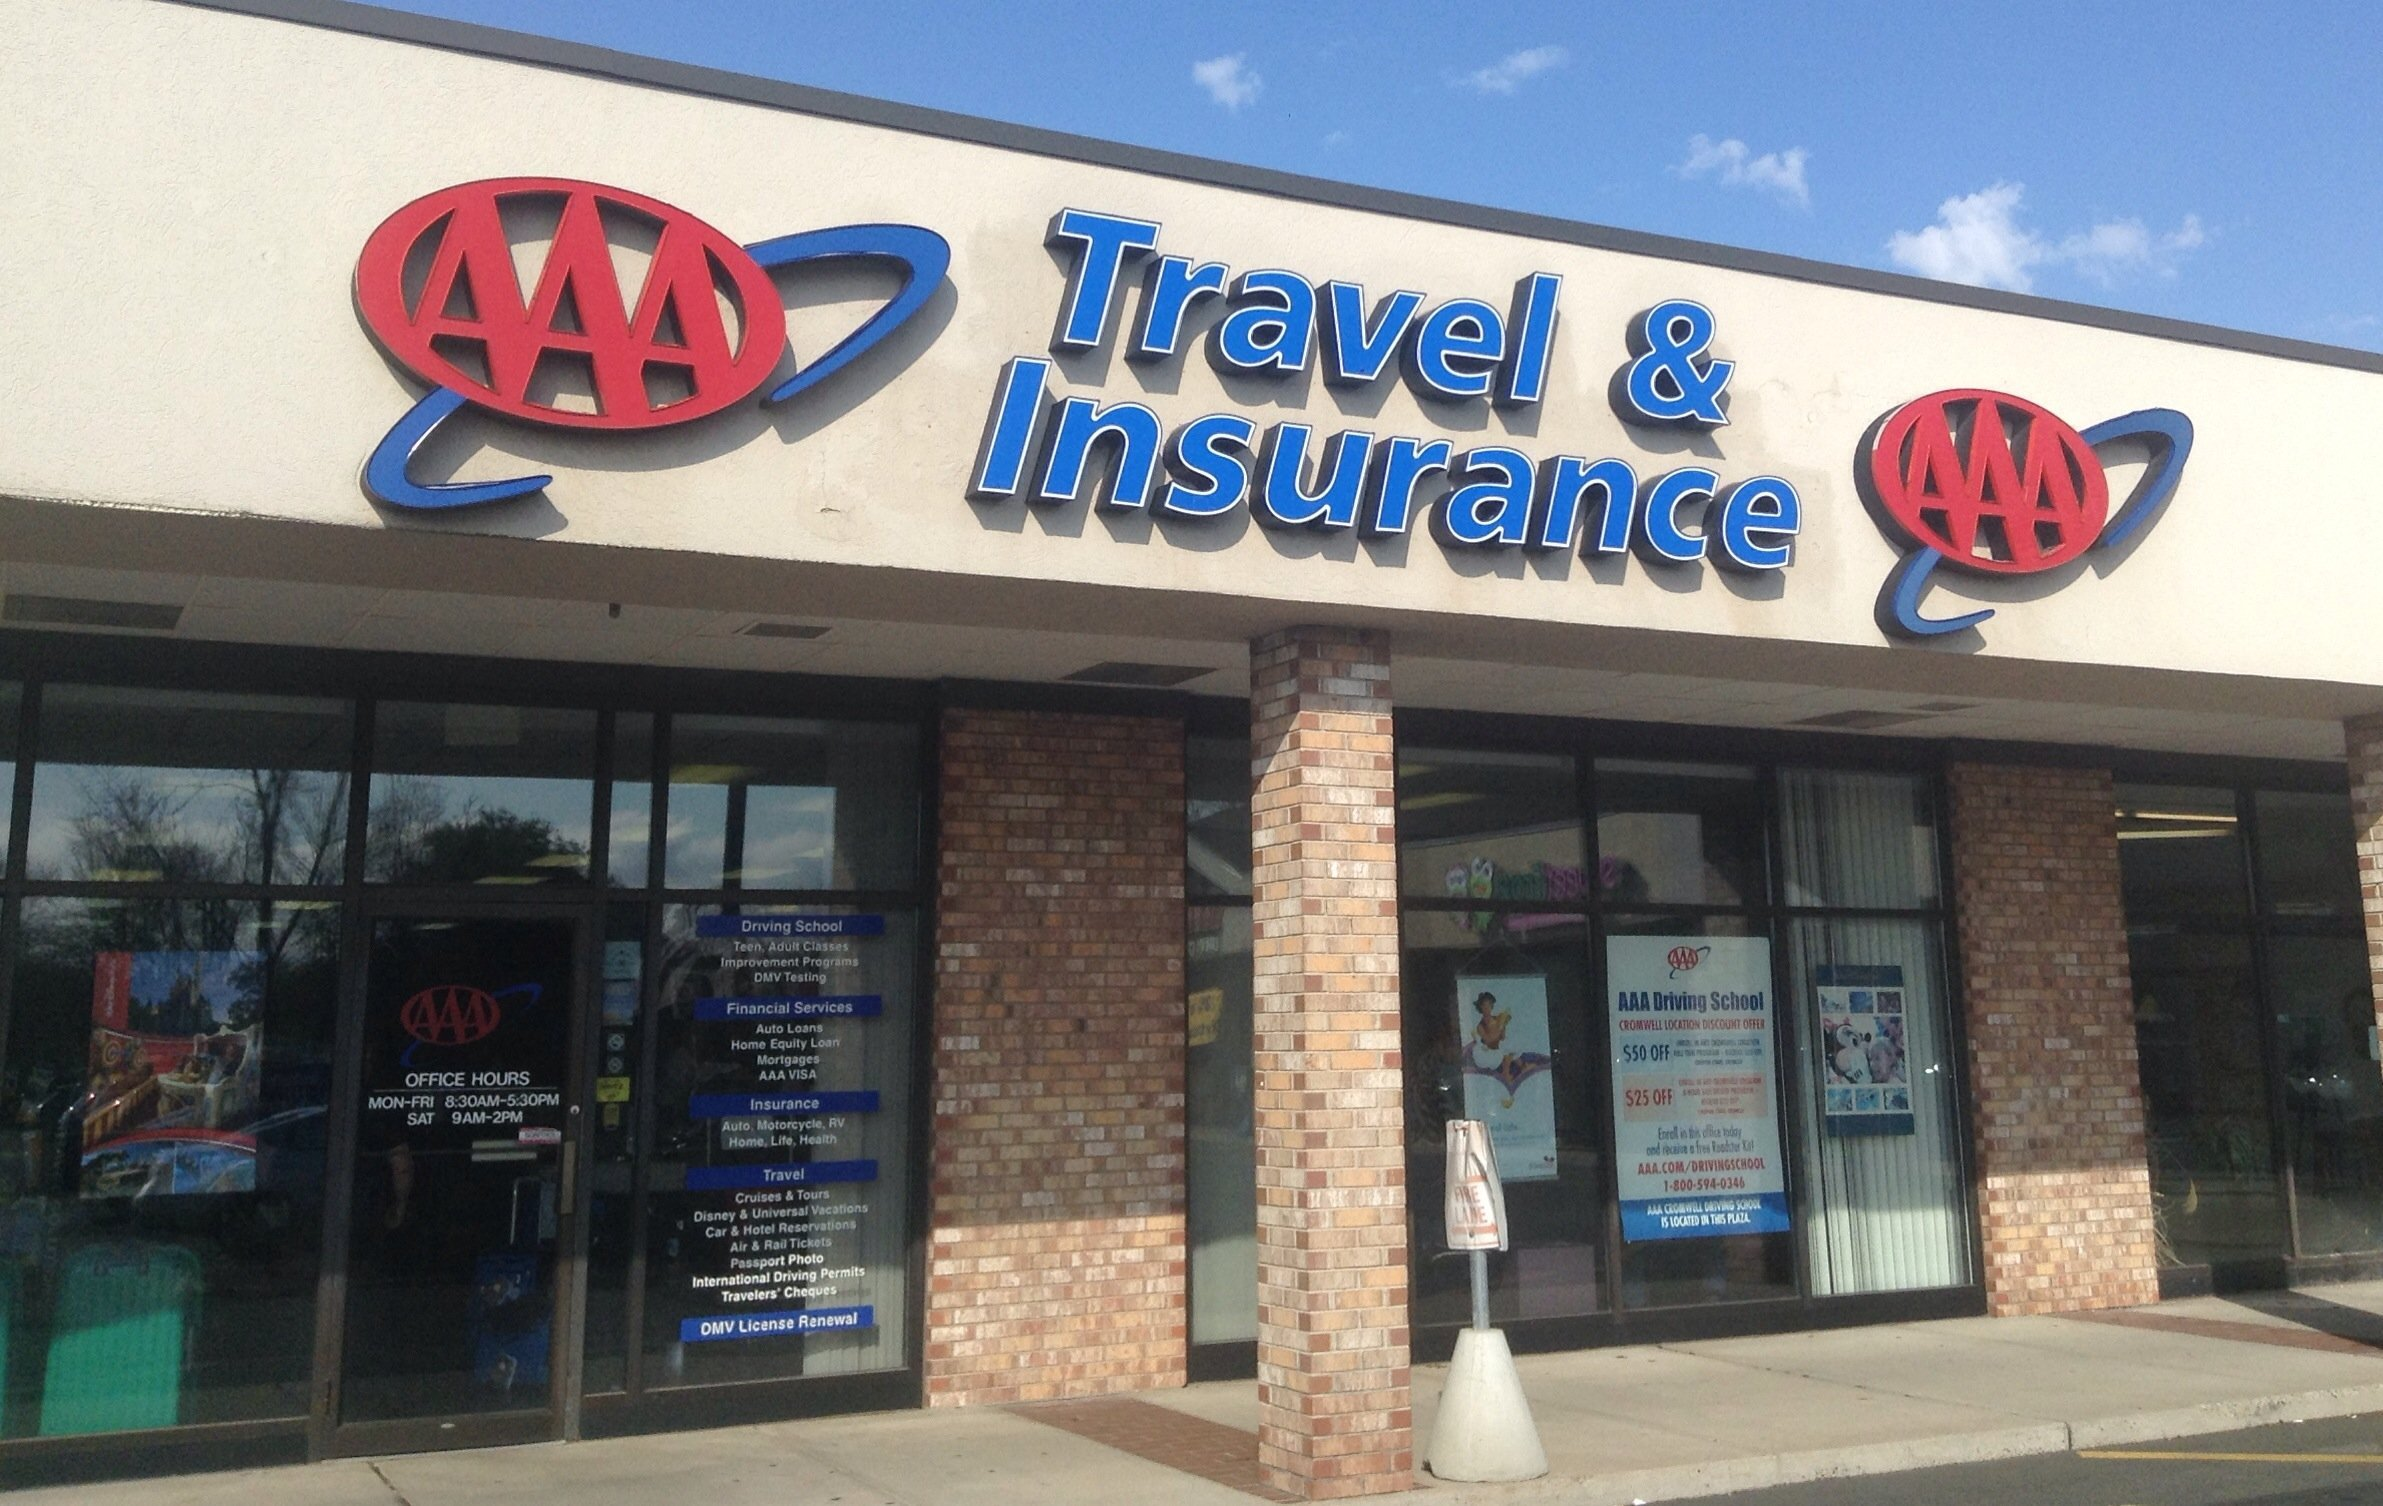 images?q=tbn:ANd9GcQh_l3eQ5xwiPy07kGEXjmjgmBKBRB7H2mRxCGhv1tFWg5c_mWT Trends For Aaa Auto Insurance Hours @autoinsuranceluck.xyz